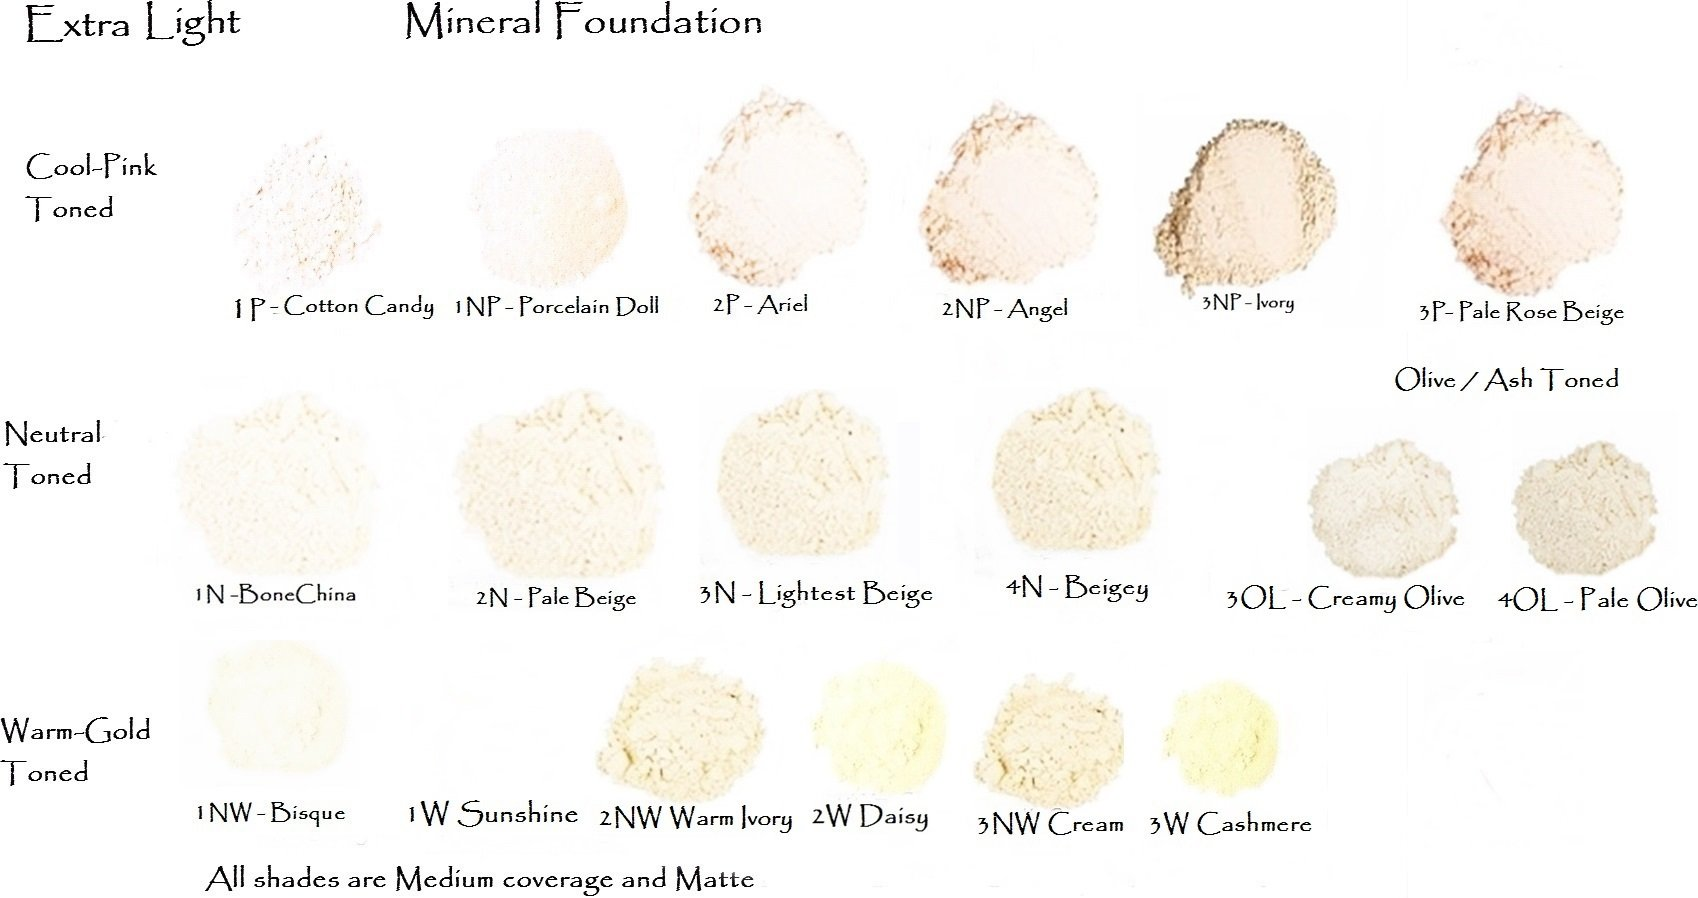 Warm Ivory - Light Medium Warm Beige Loose Mineral Foundation - All Natural 50gm Jar